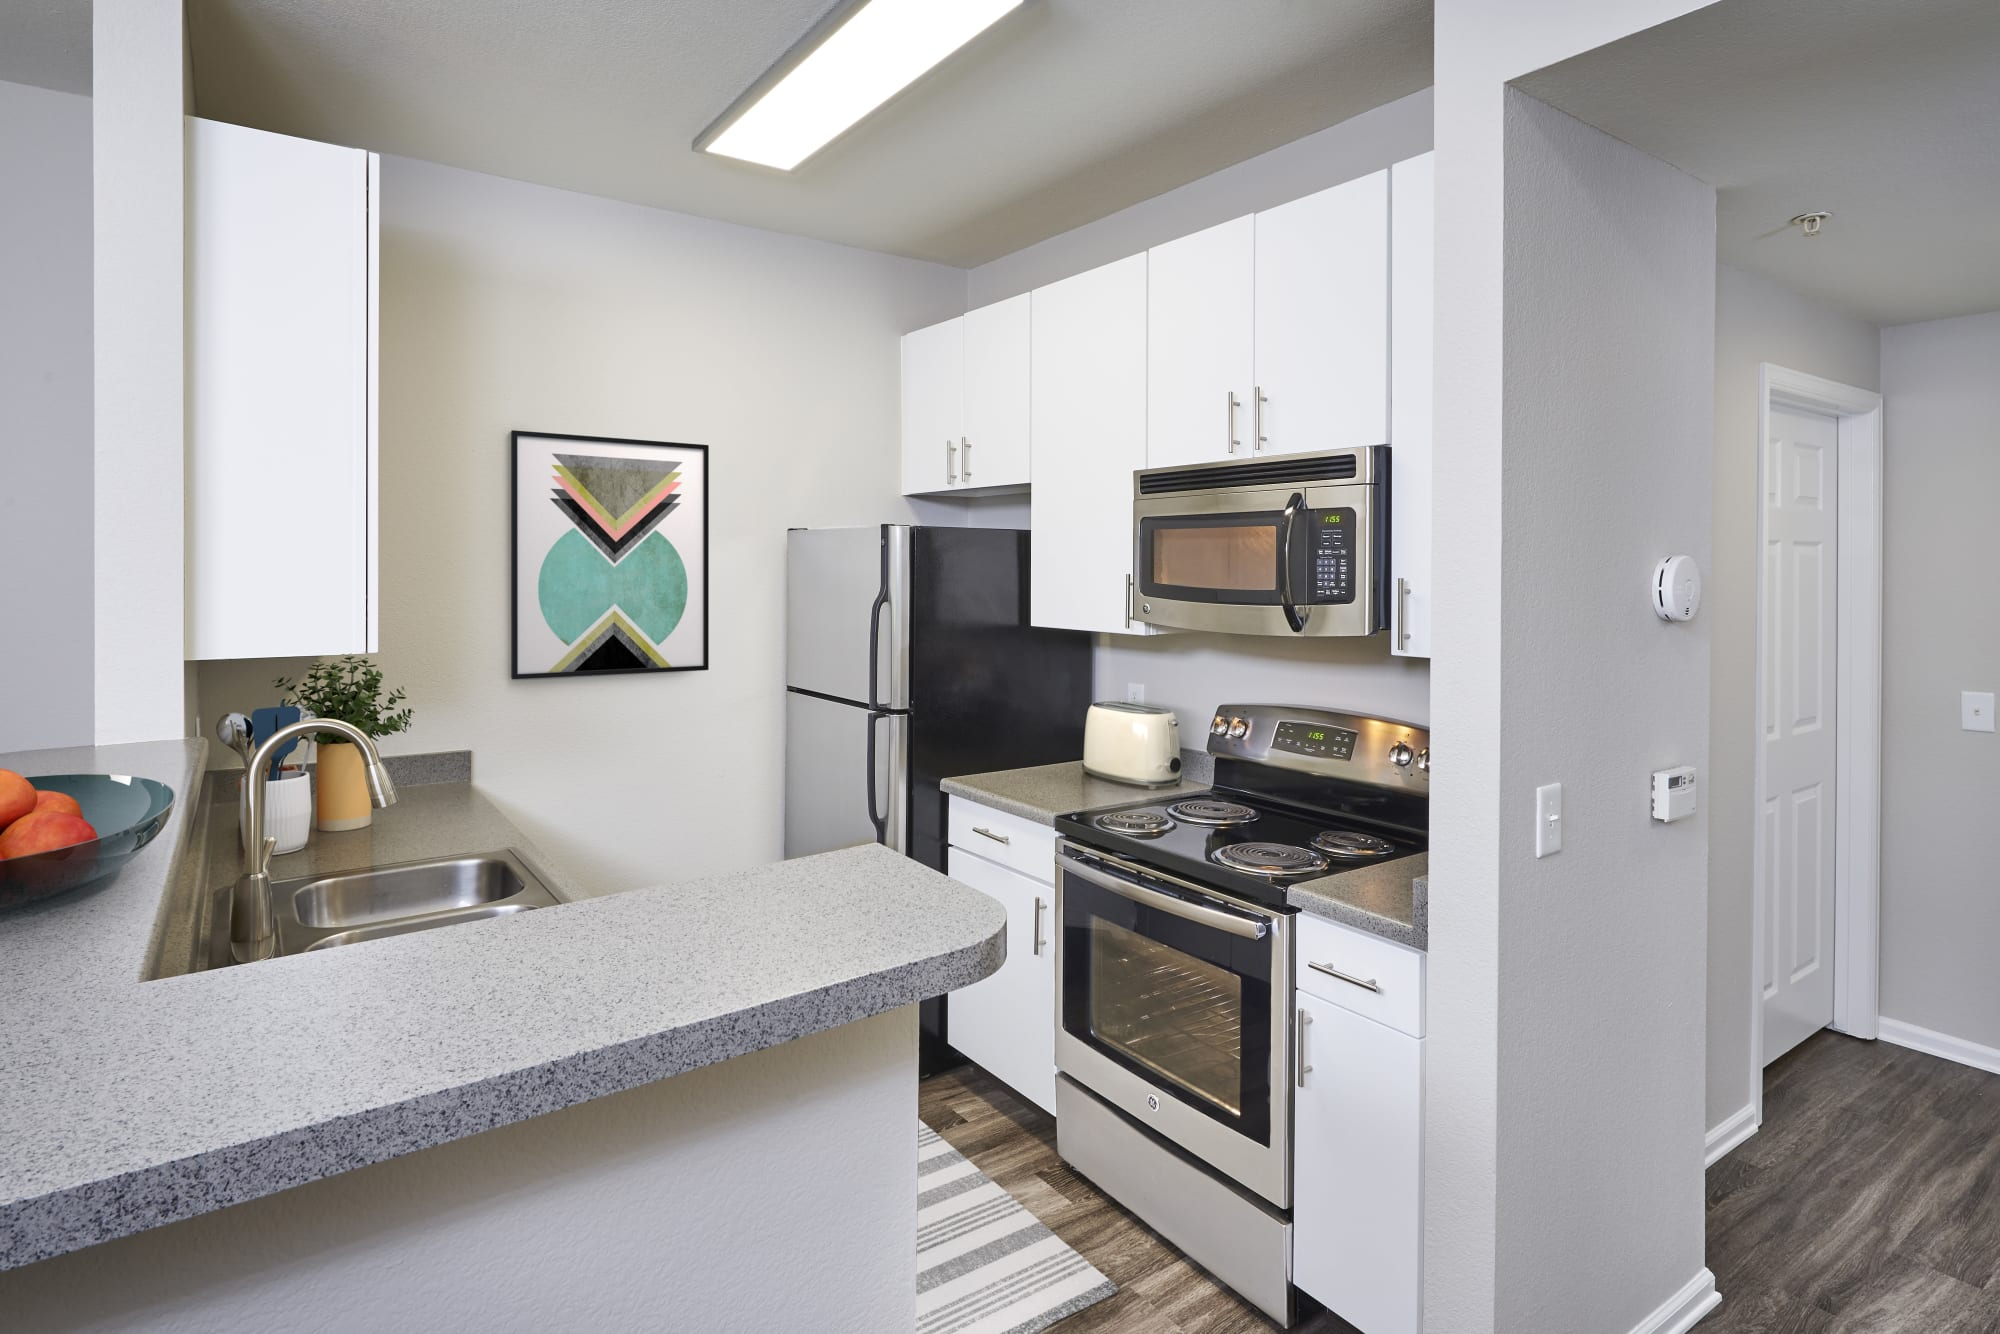 White renovated kitchen with stainless steel appliances at Bear Valley Park in Denver, Colorado